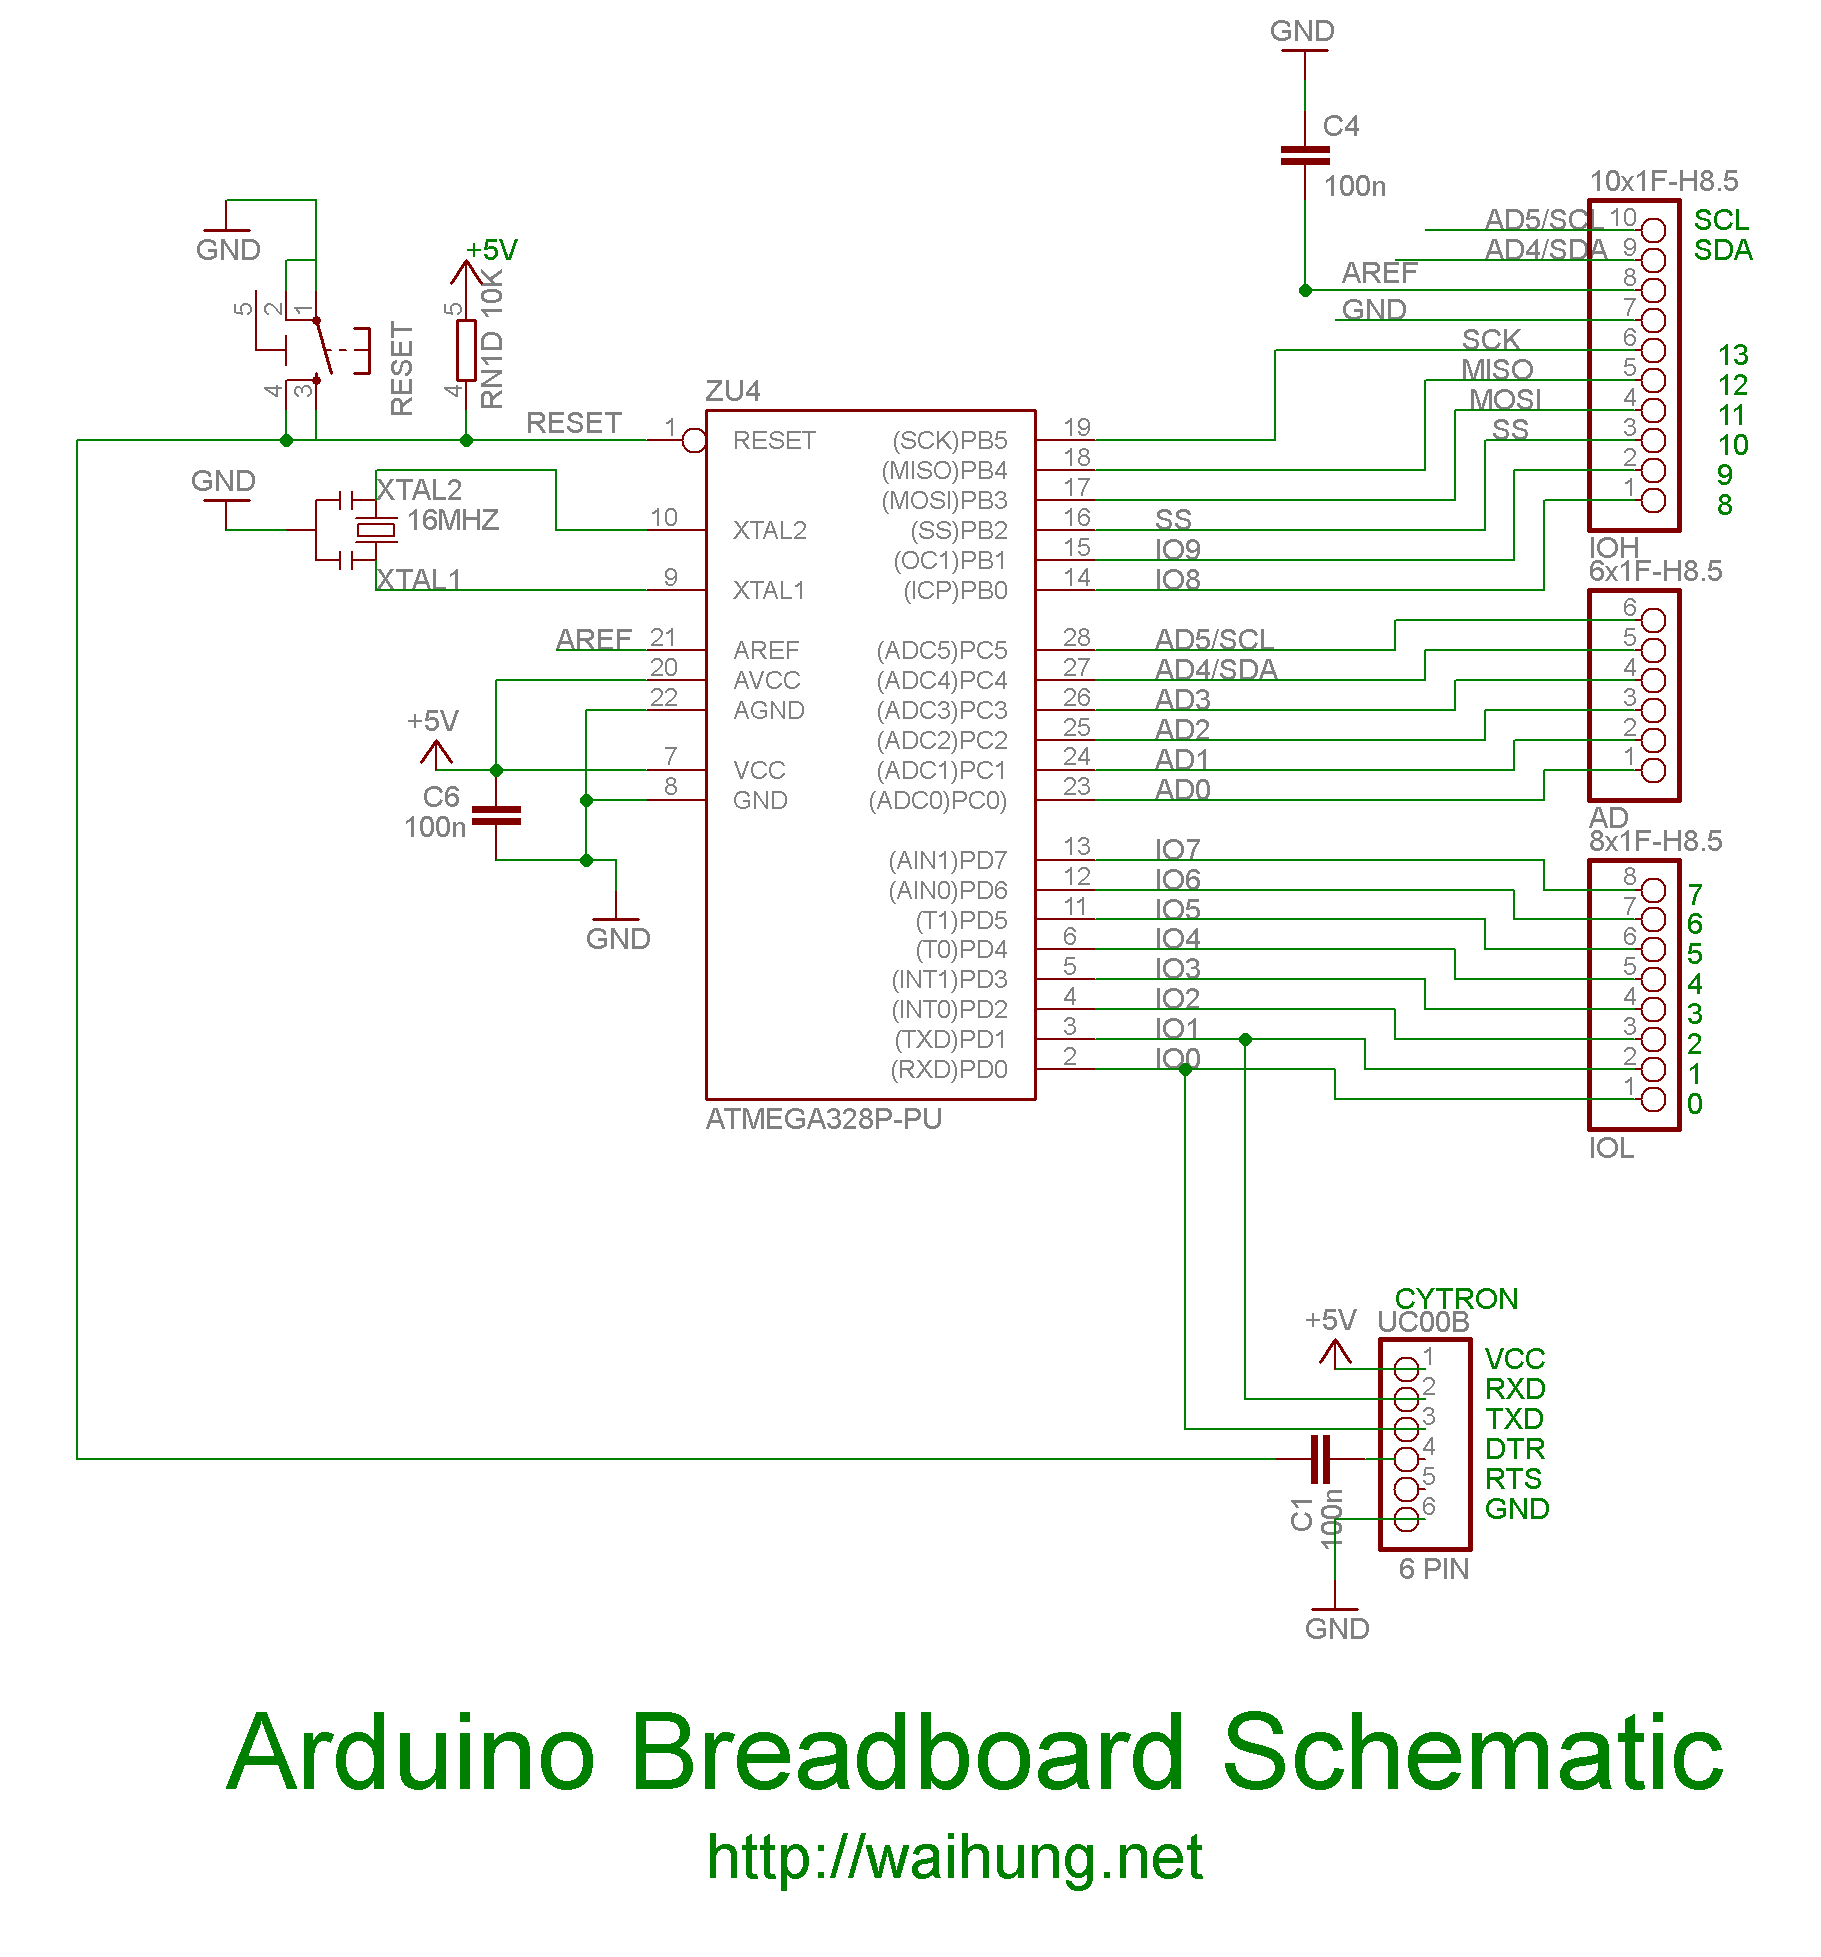 Making Your Own Arduino Part 2 (Arduino on Breadboard)